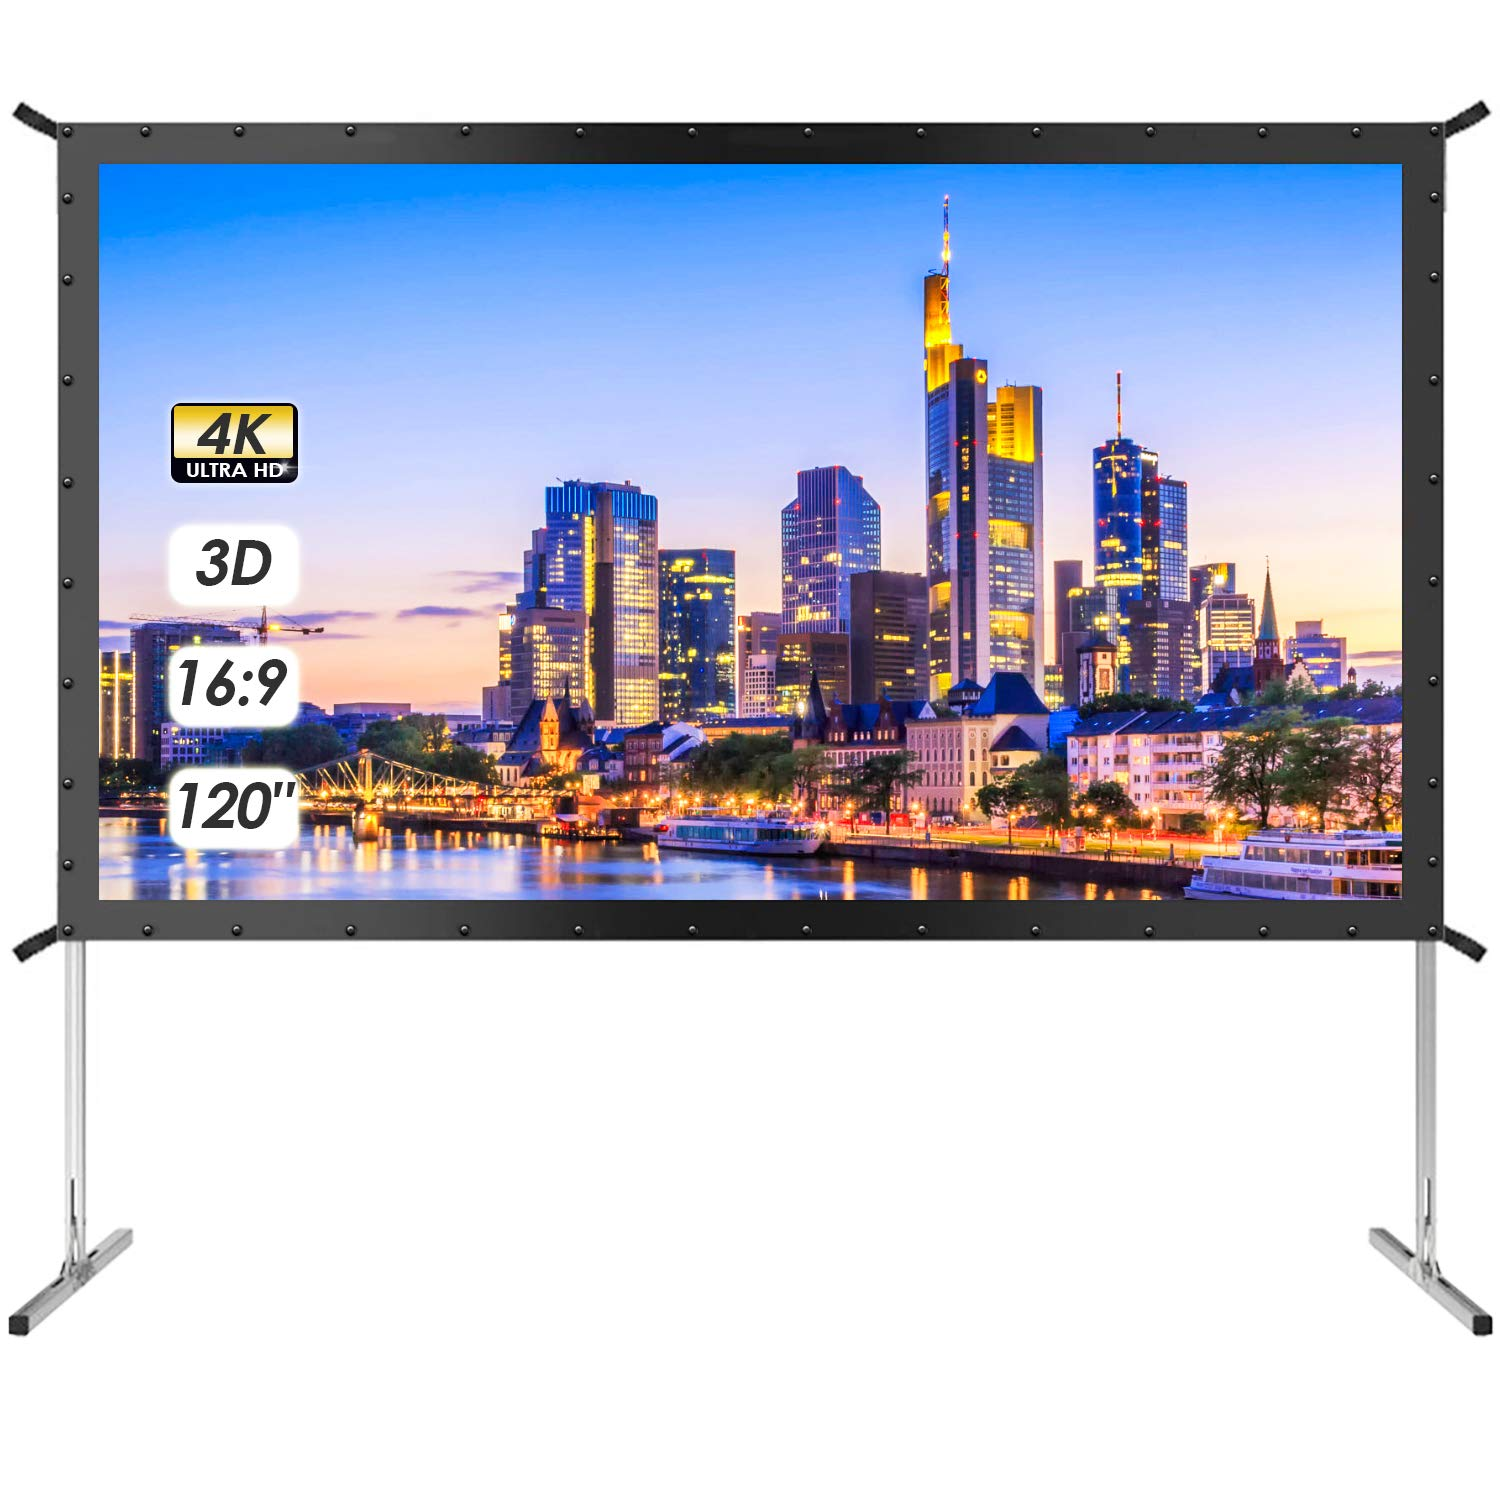 120 Inch Projector Screen with Stand - TUSY 4K HD 3D Indoor/Outdoor Foldable Projection Screens 16:9 Portable Movie Theater for Gaming Camping Cinema